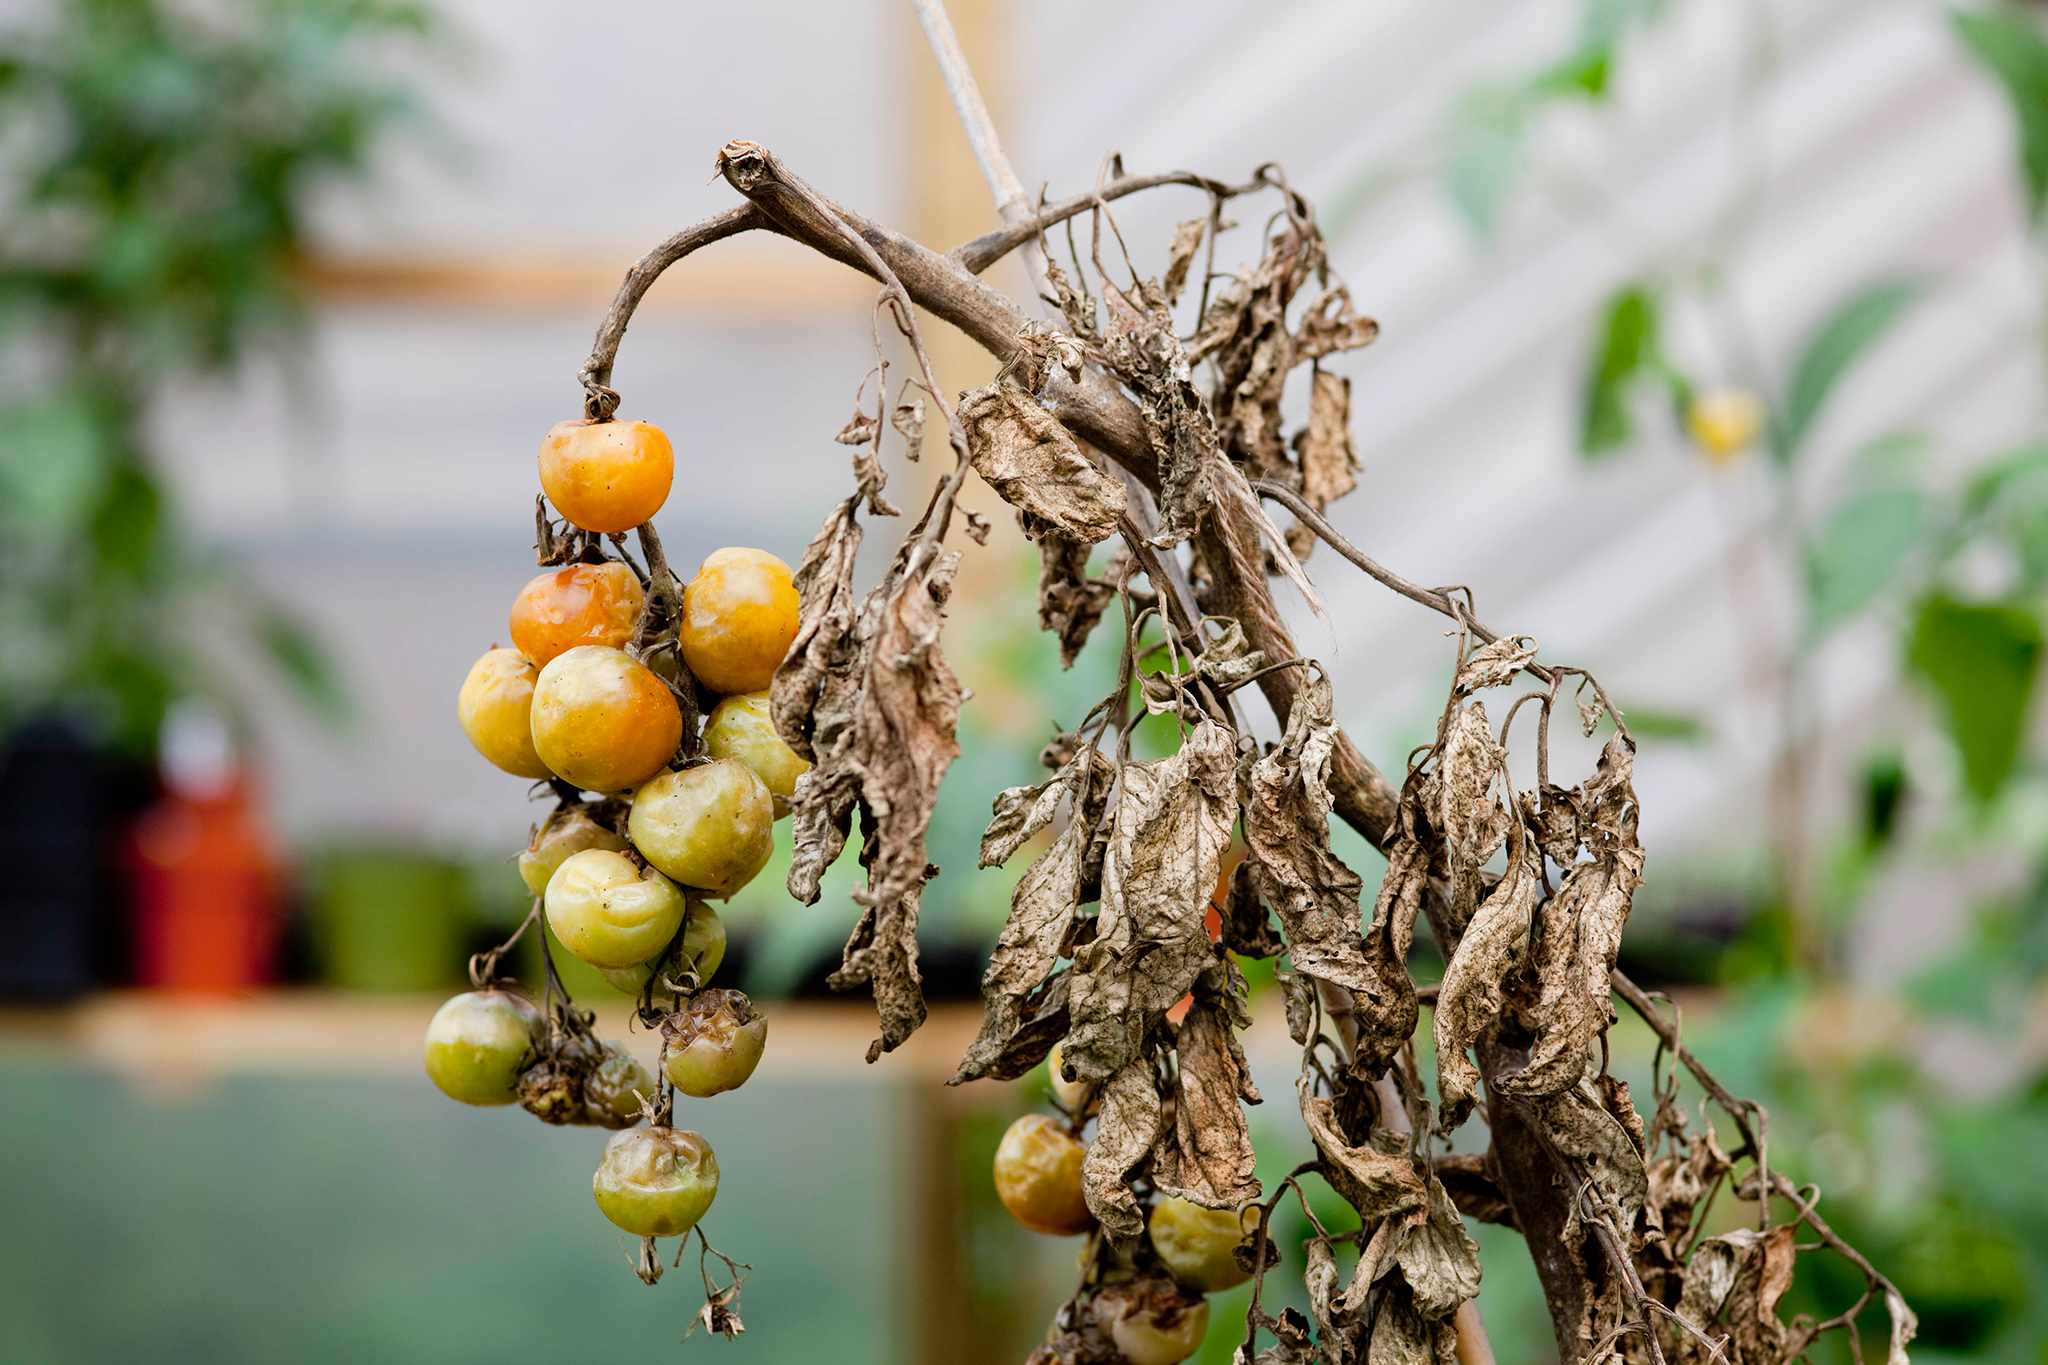 blighted-tomato-plant-3